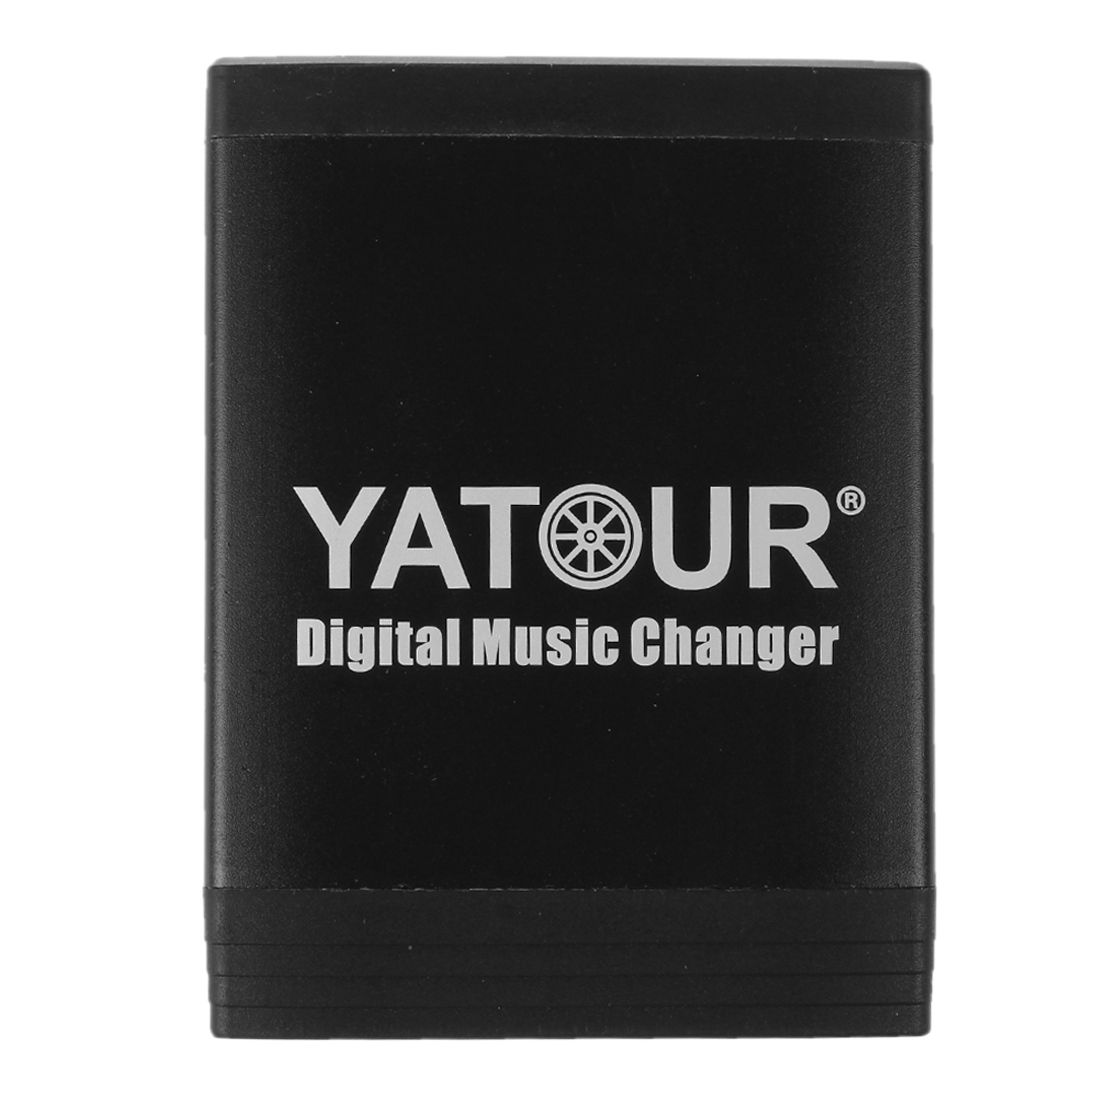 YATOUR Digital Music Changer for BMW 3pin+6pin Trunk Connector USB Sd AUX Mp3 Adapter yatour car adapter aux mp3 sd usb music cd changer 8pin cdc connector for renault avantime clio kangoo master radios